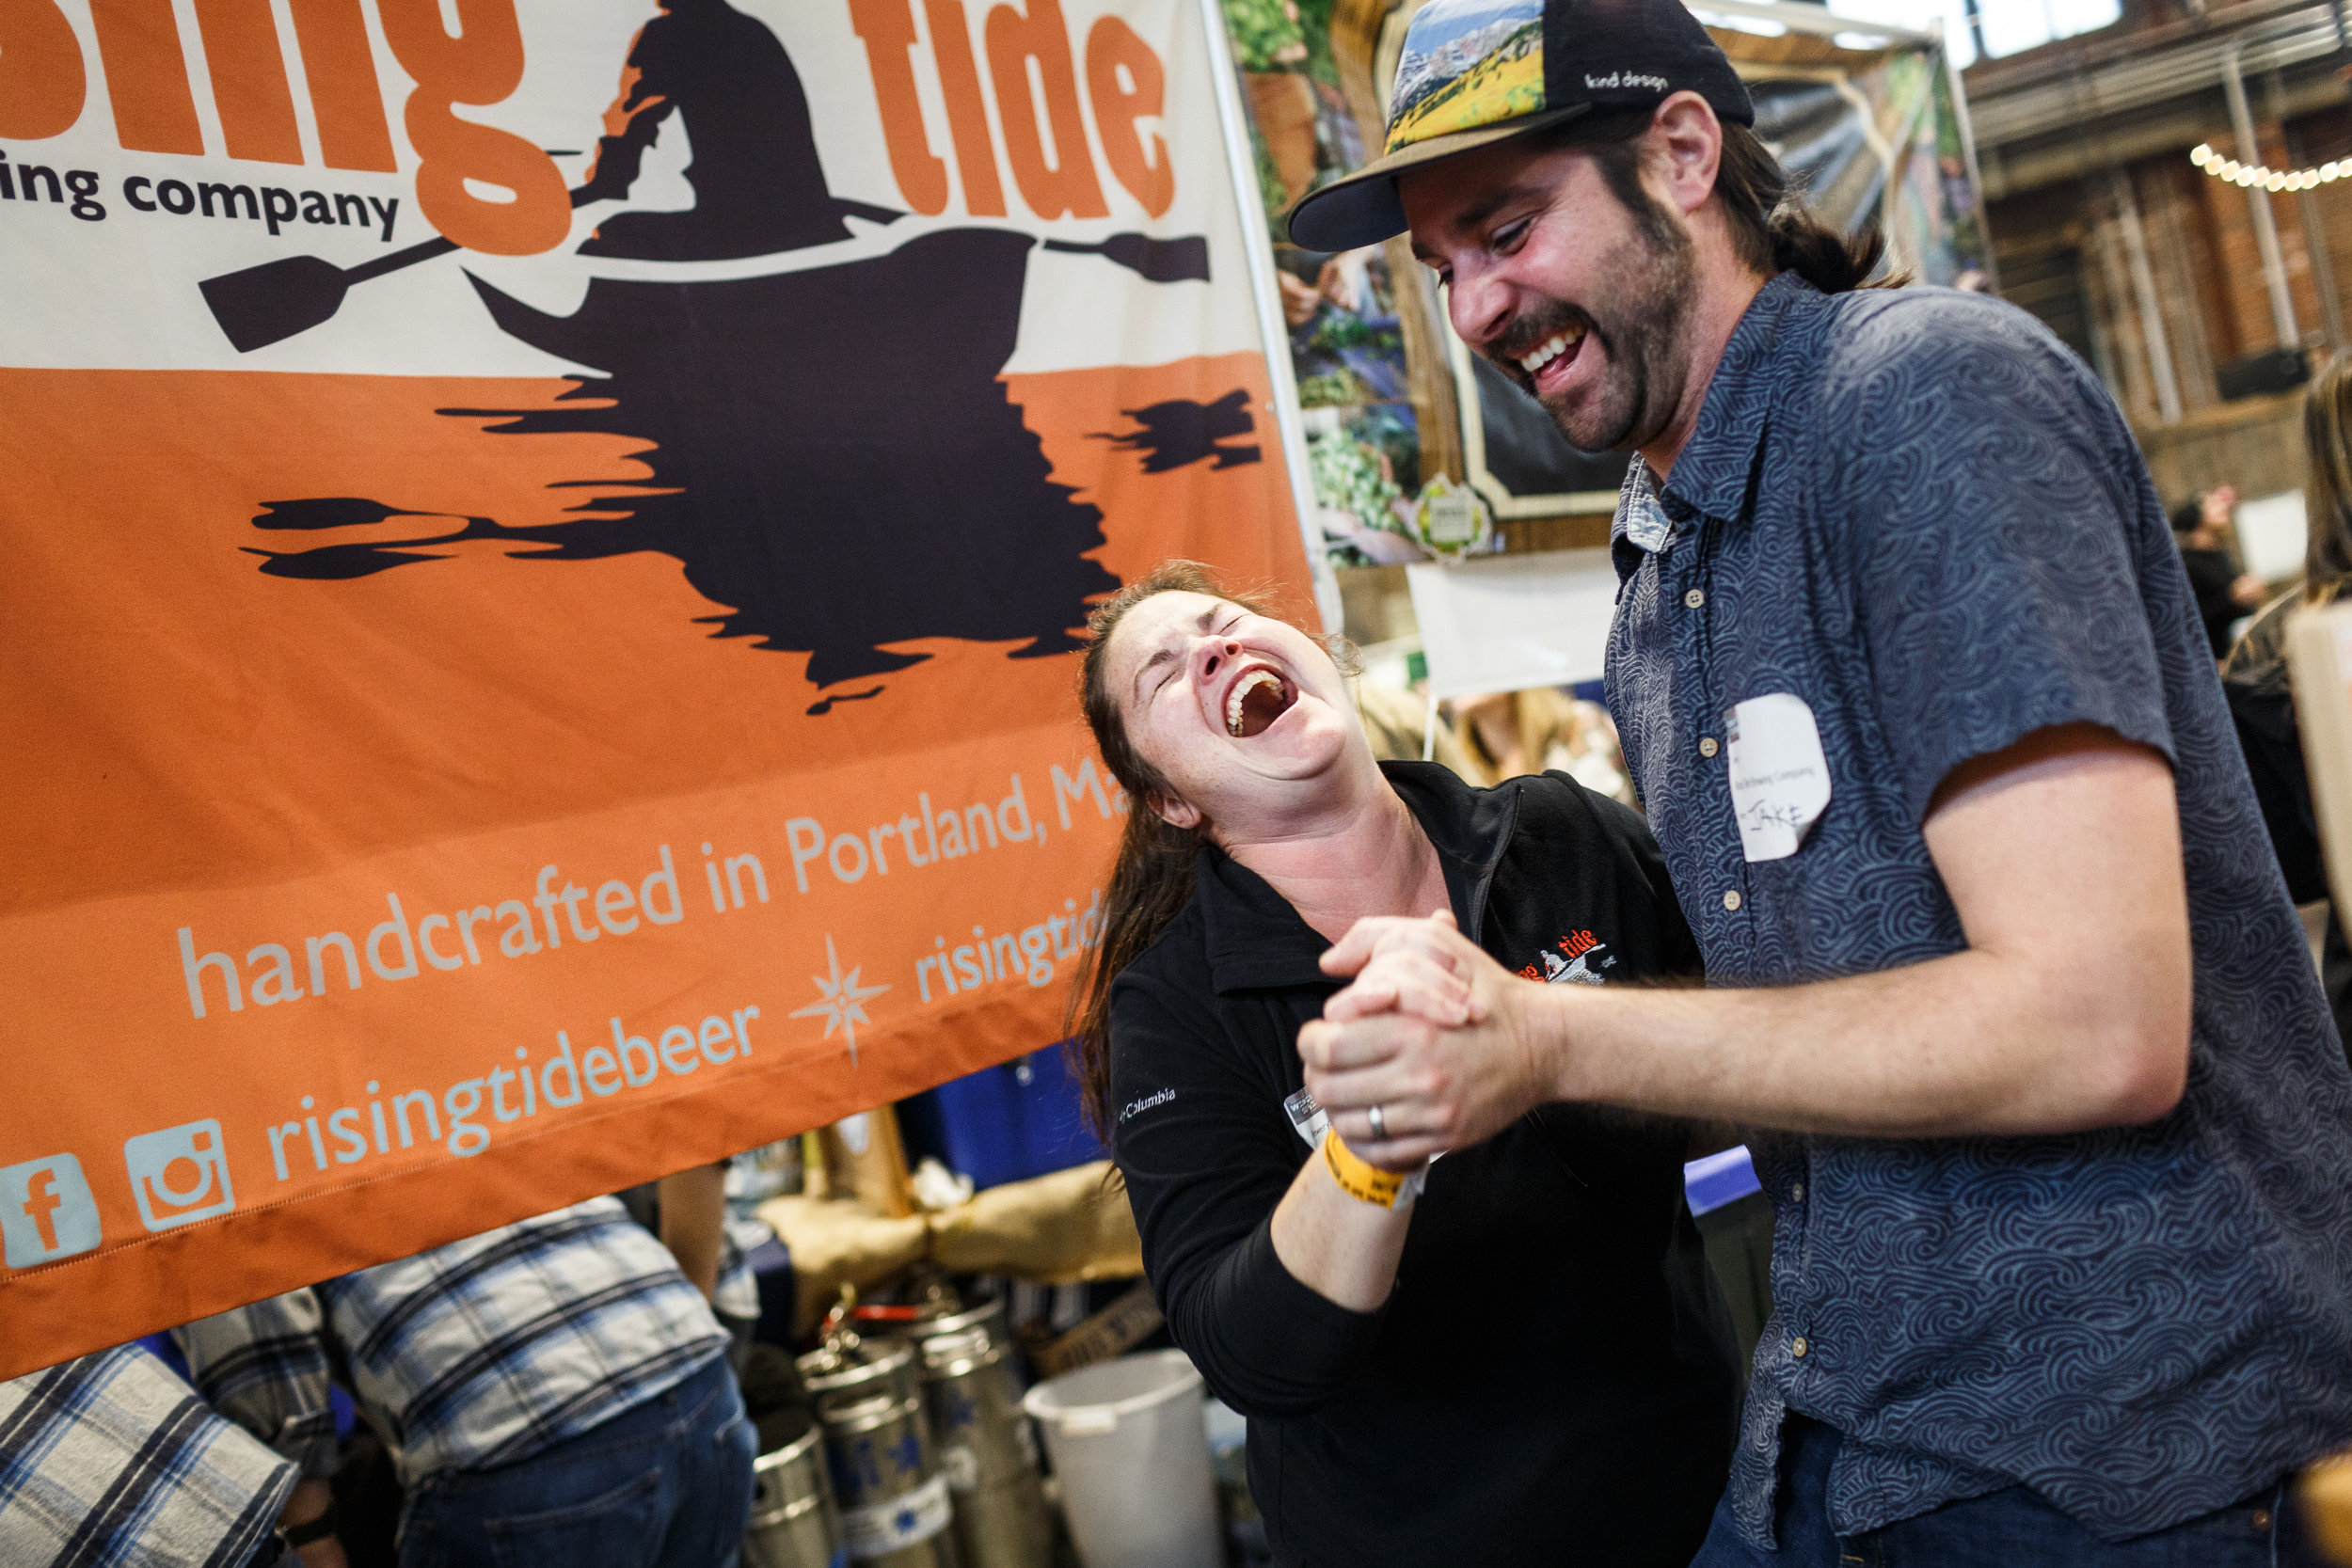 28_maine_brewers_guild_winter_session_2108_knack_factory_maine_photographer_whitney_j_fox_0691.jpg